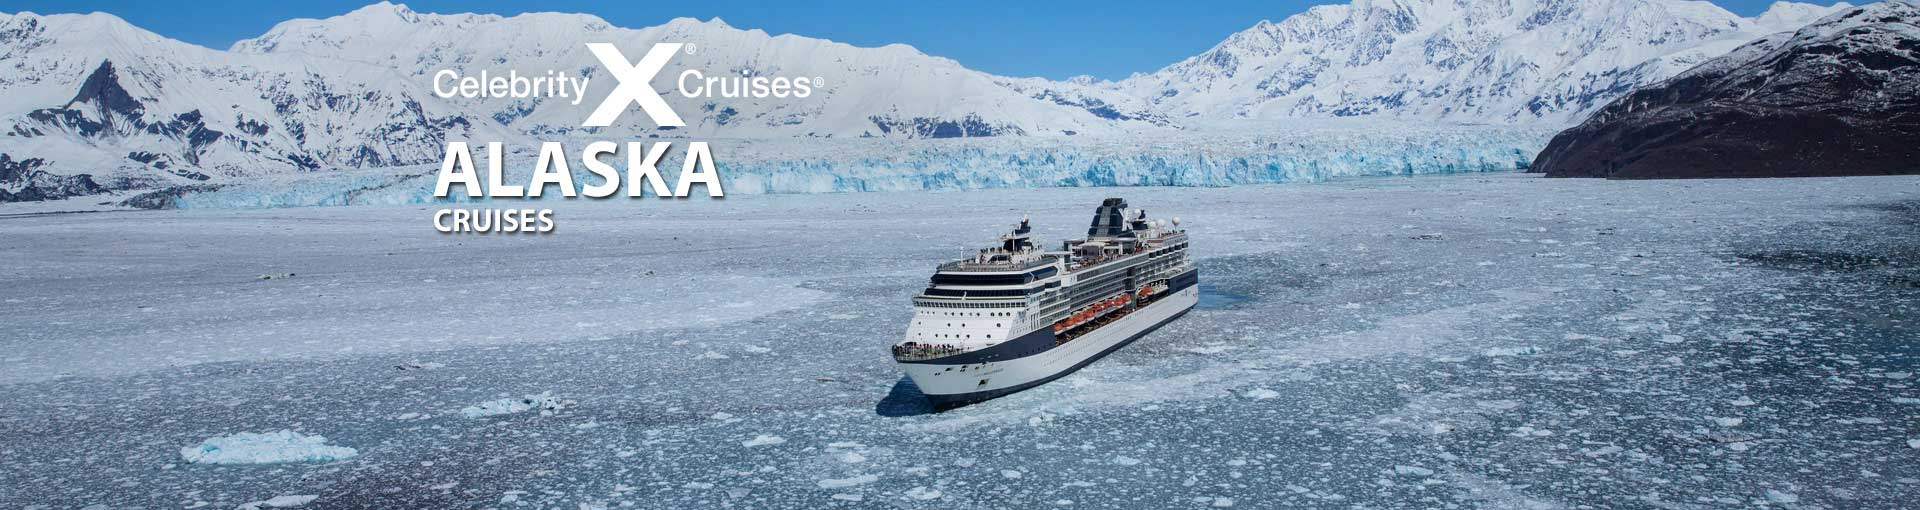 Princess Cruises: Roundtrip Alaska Cruise from Seattle 2019